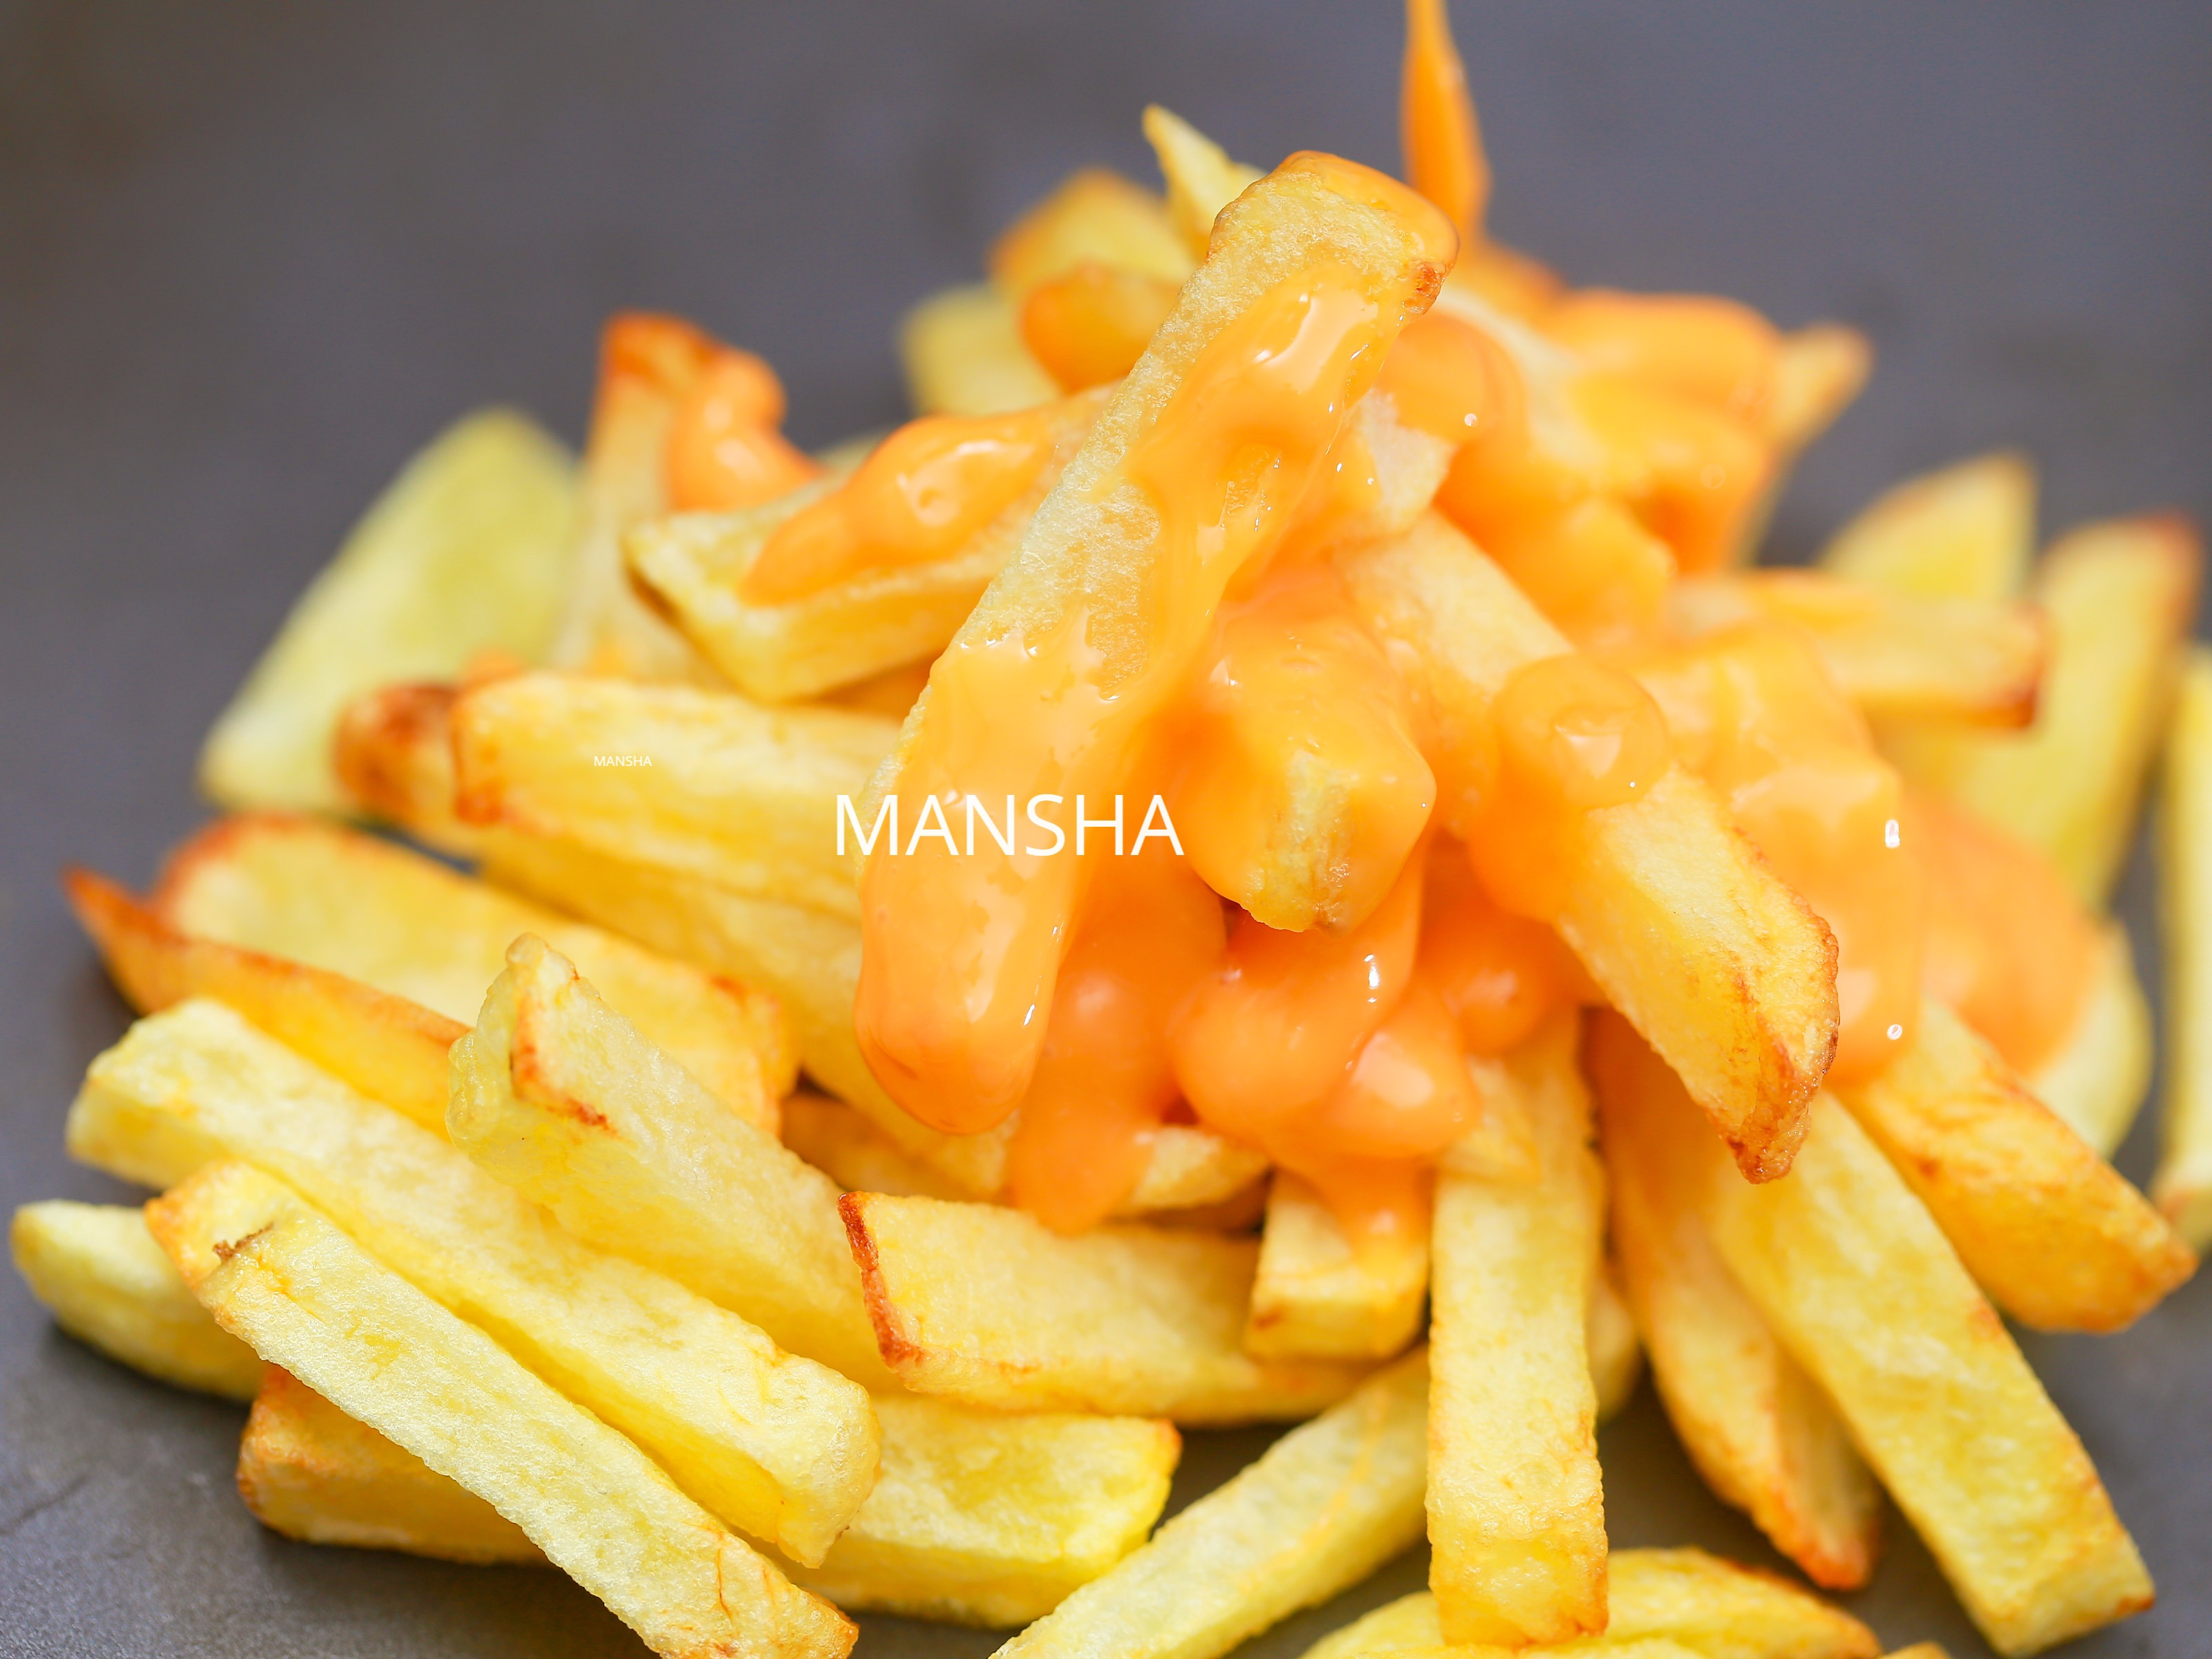 CHEESEFRENCH FRIES